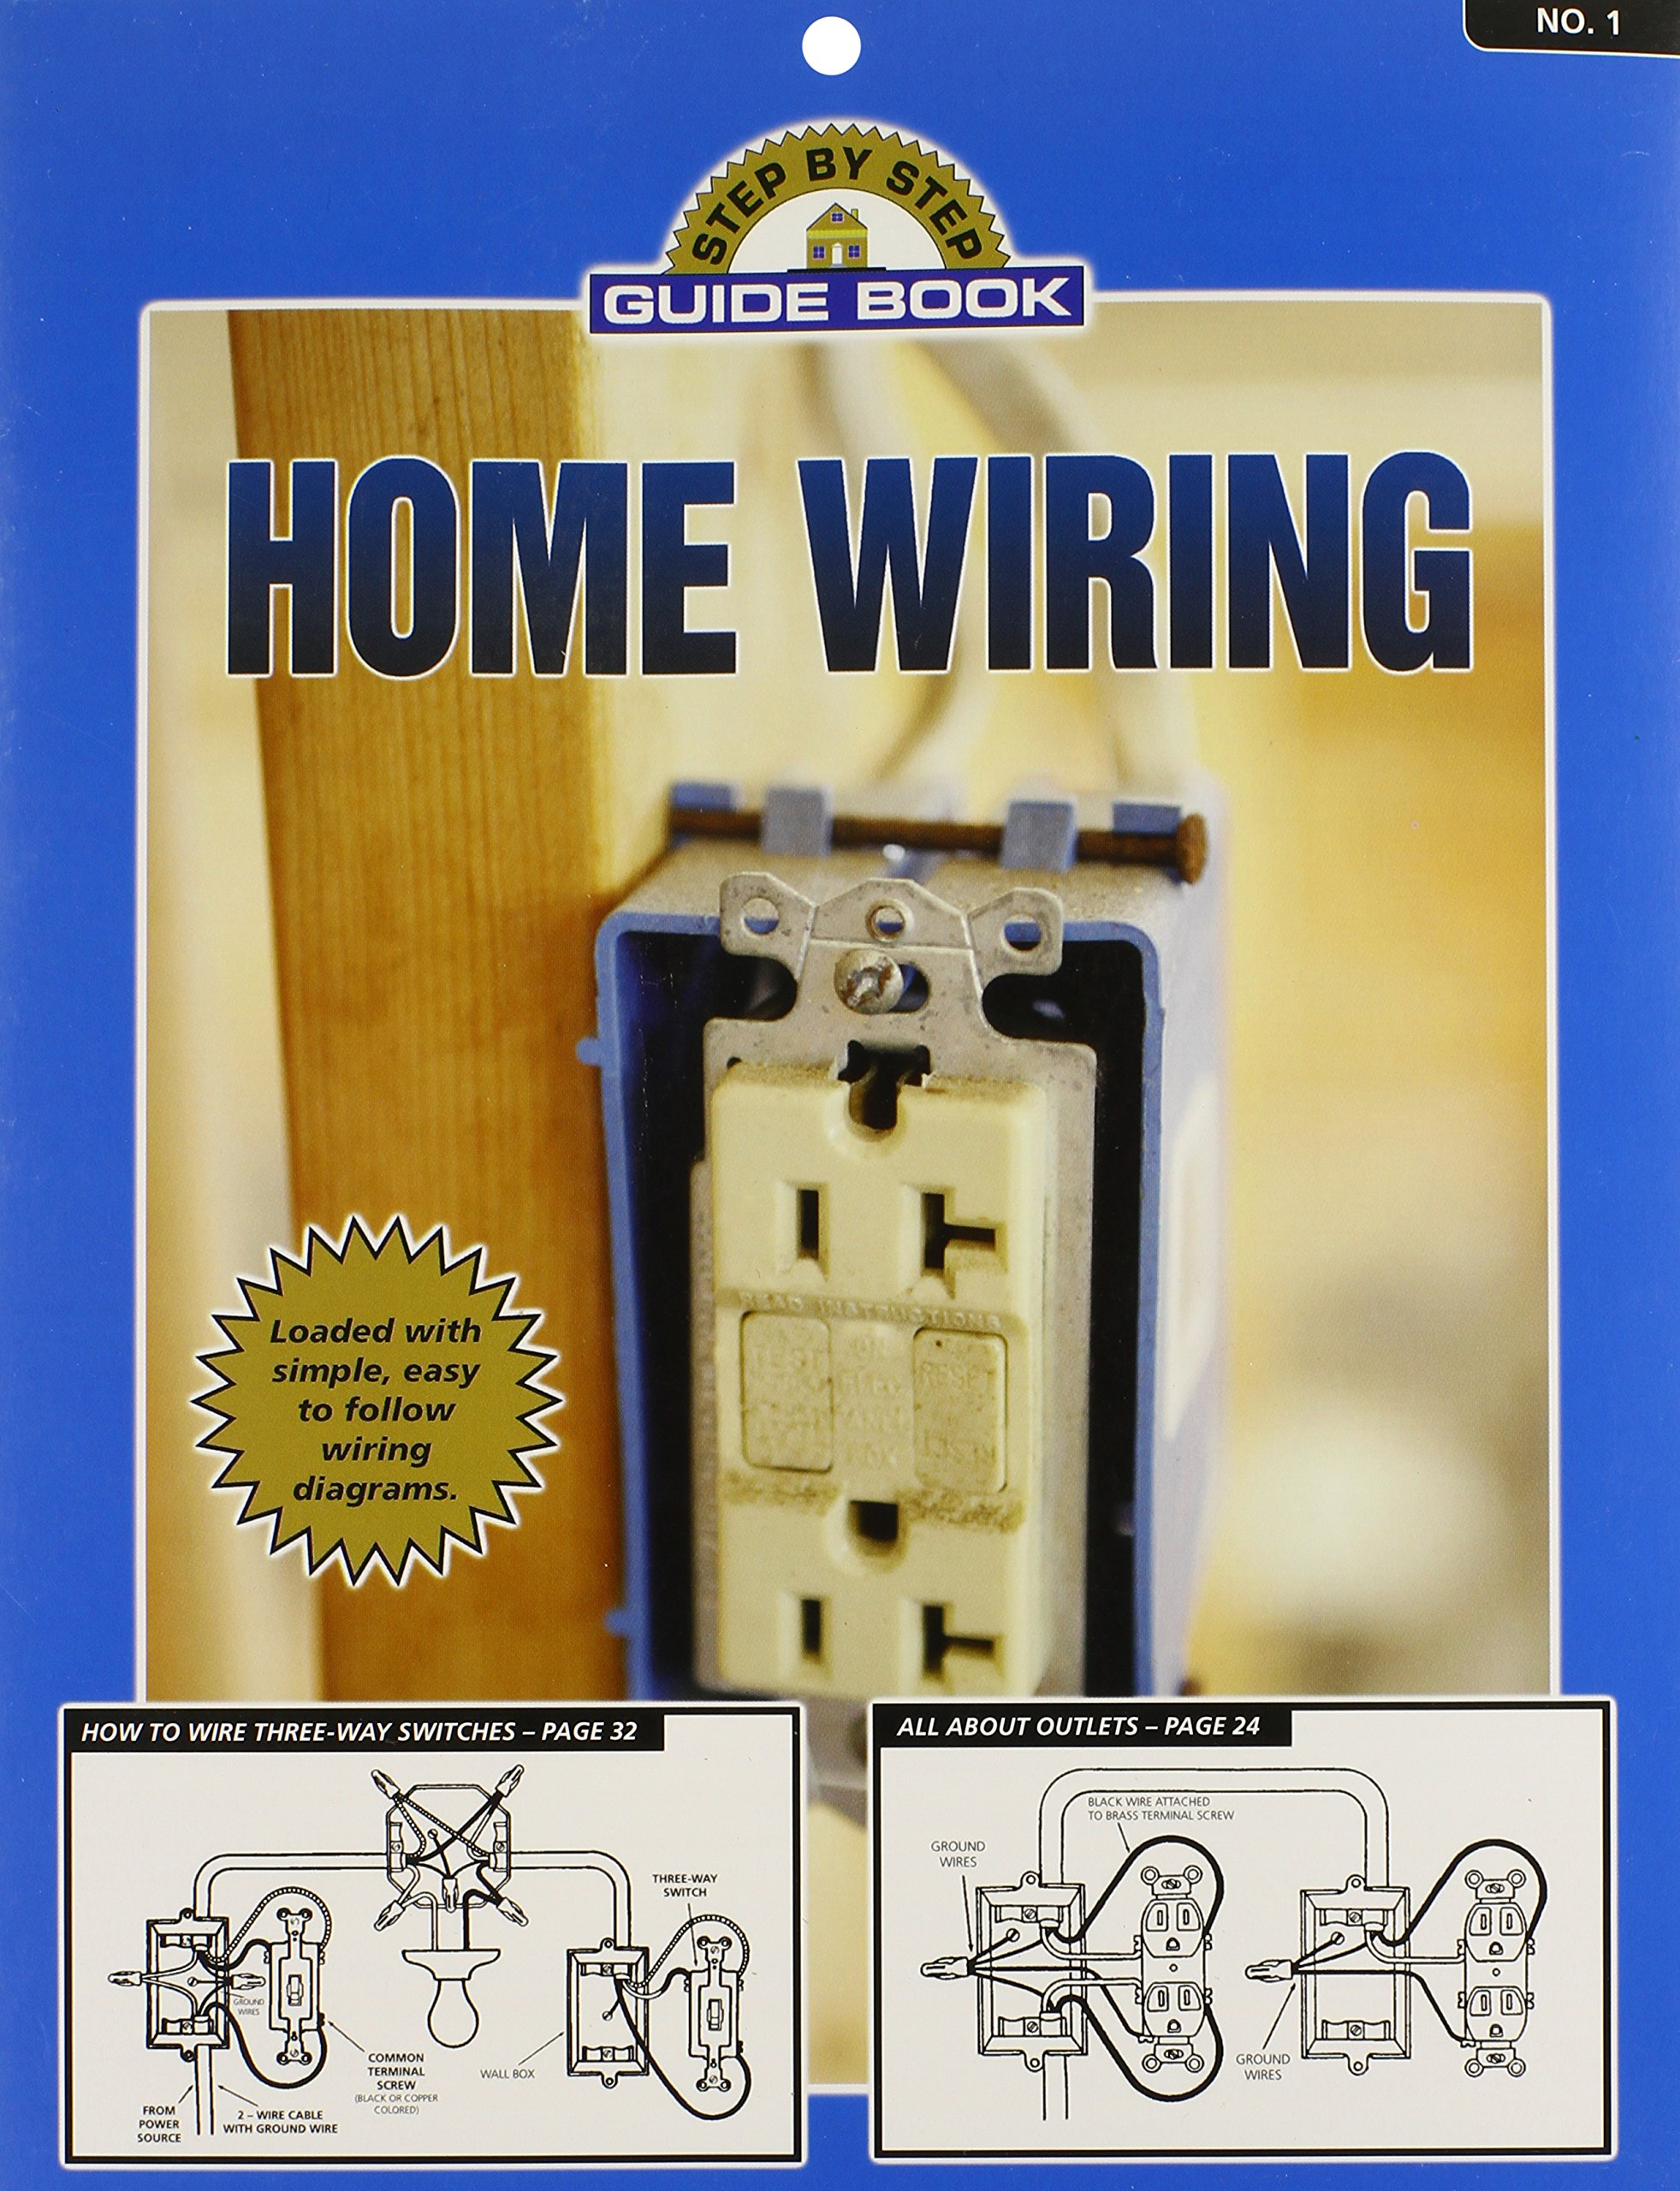 Step by step guide book on home wiring ray mcreynolds elaine step by step guide book on home wiring ray mcreynolds elaine mcreynolds shane e richins 9780961920104 amazon books asfbconference2016 Images